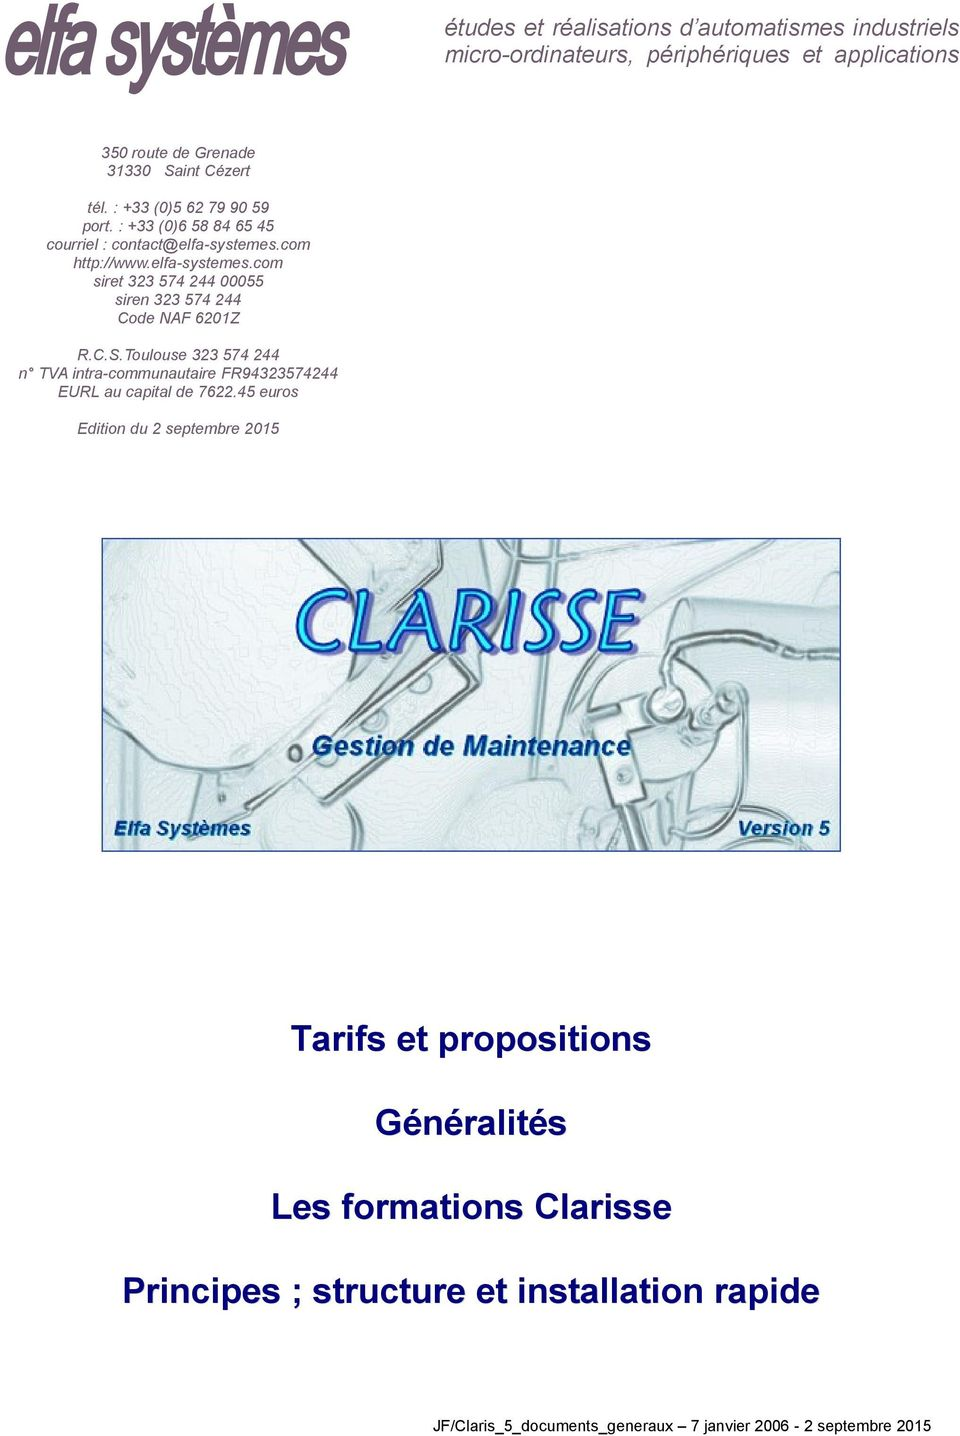 C.S.Toulouse 323 574 244 n TVA intra-communautaire FR94323574244 EURL au capital de 7622.